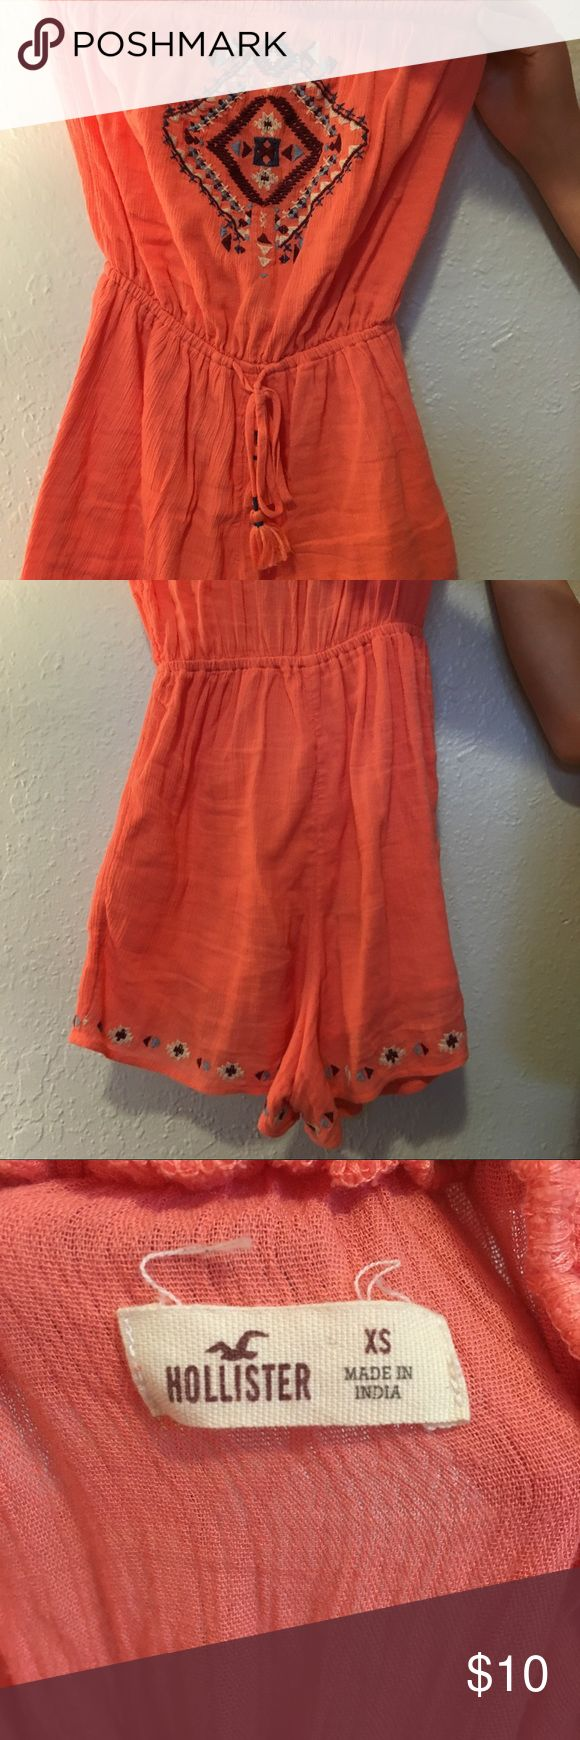 Hollister romper This a cute summer outfit that can go with any sandal or heel!  Great condition  Size x-small Hollister Other